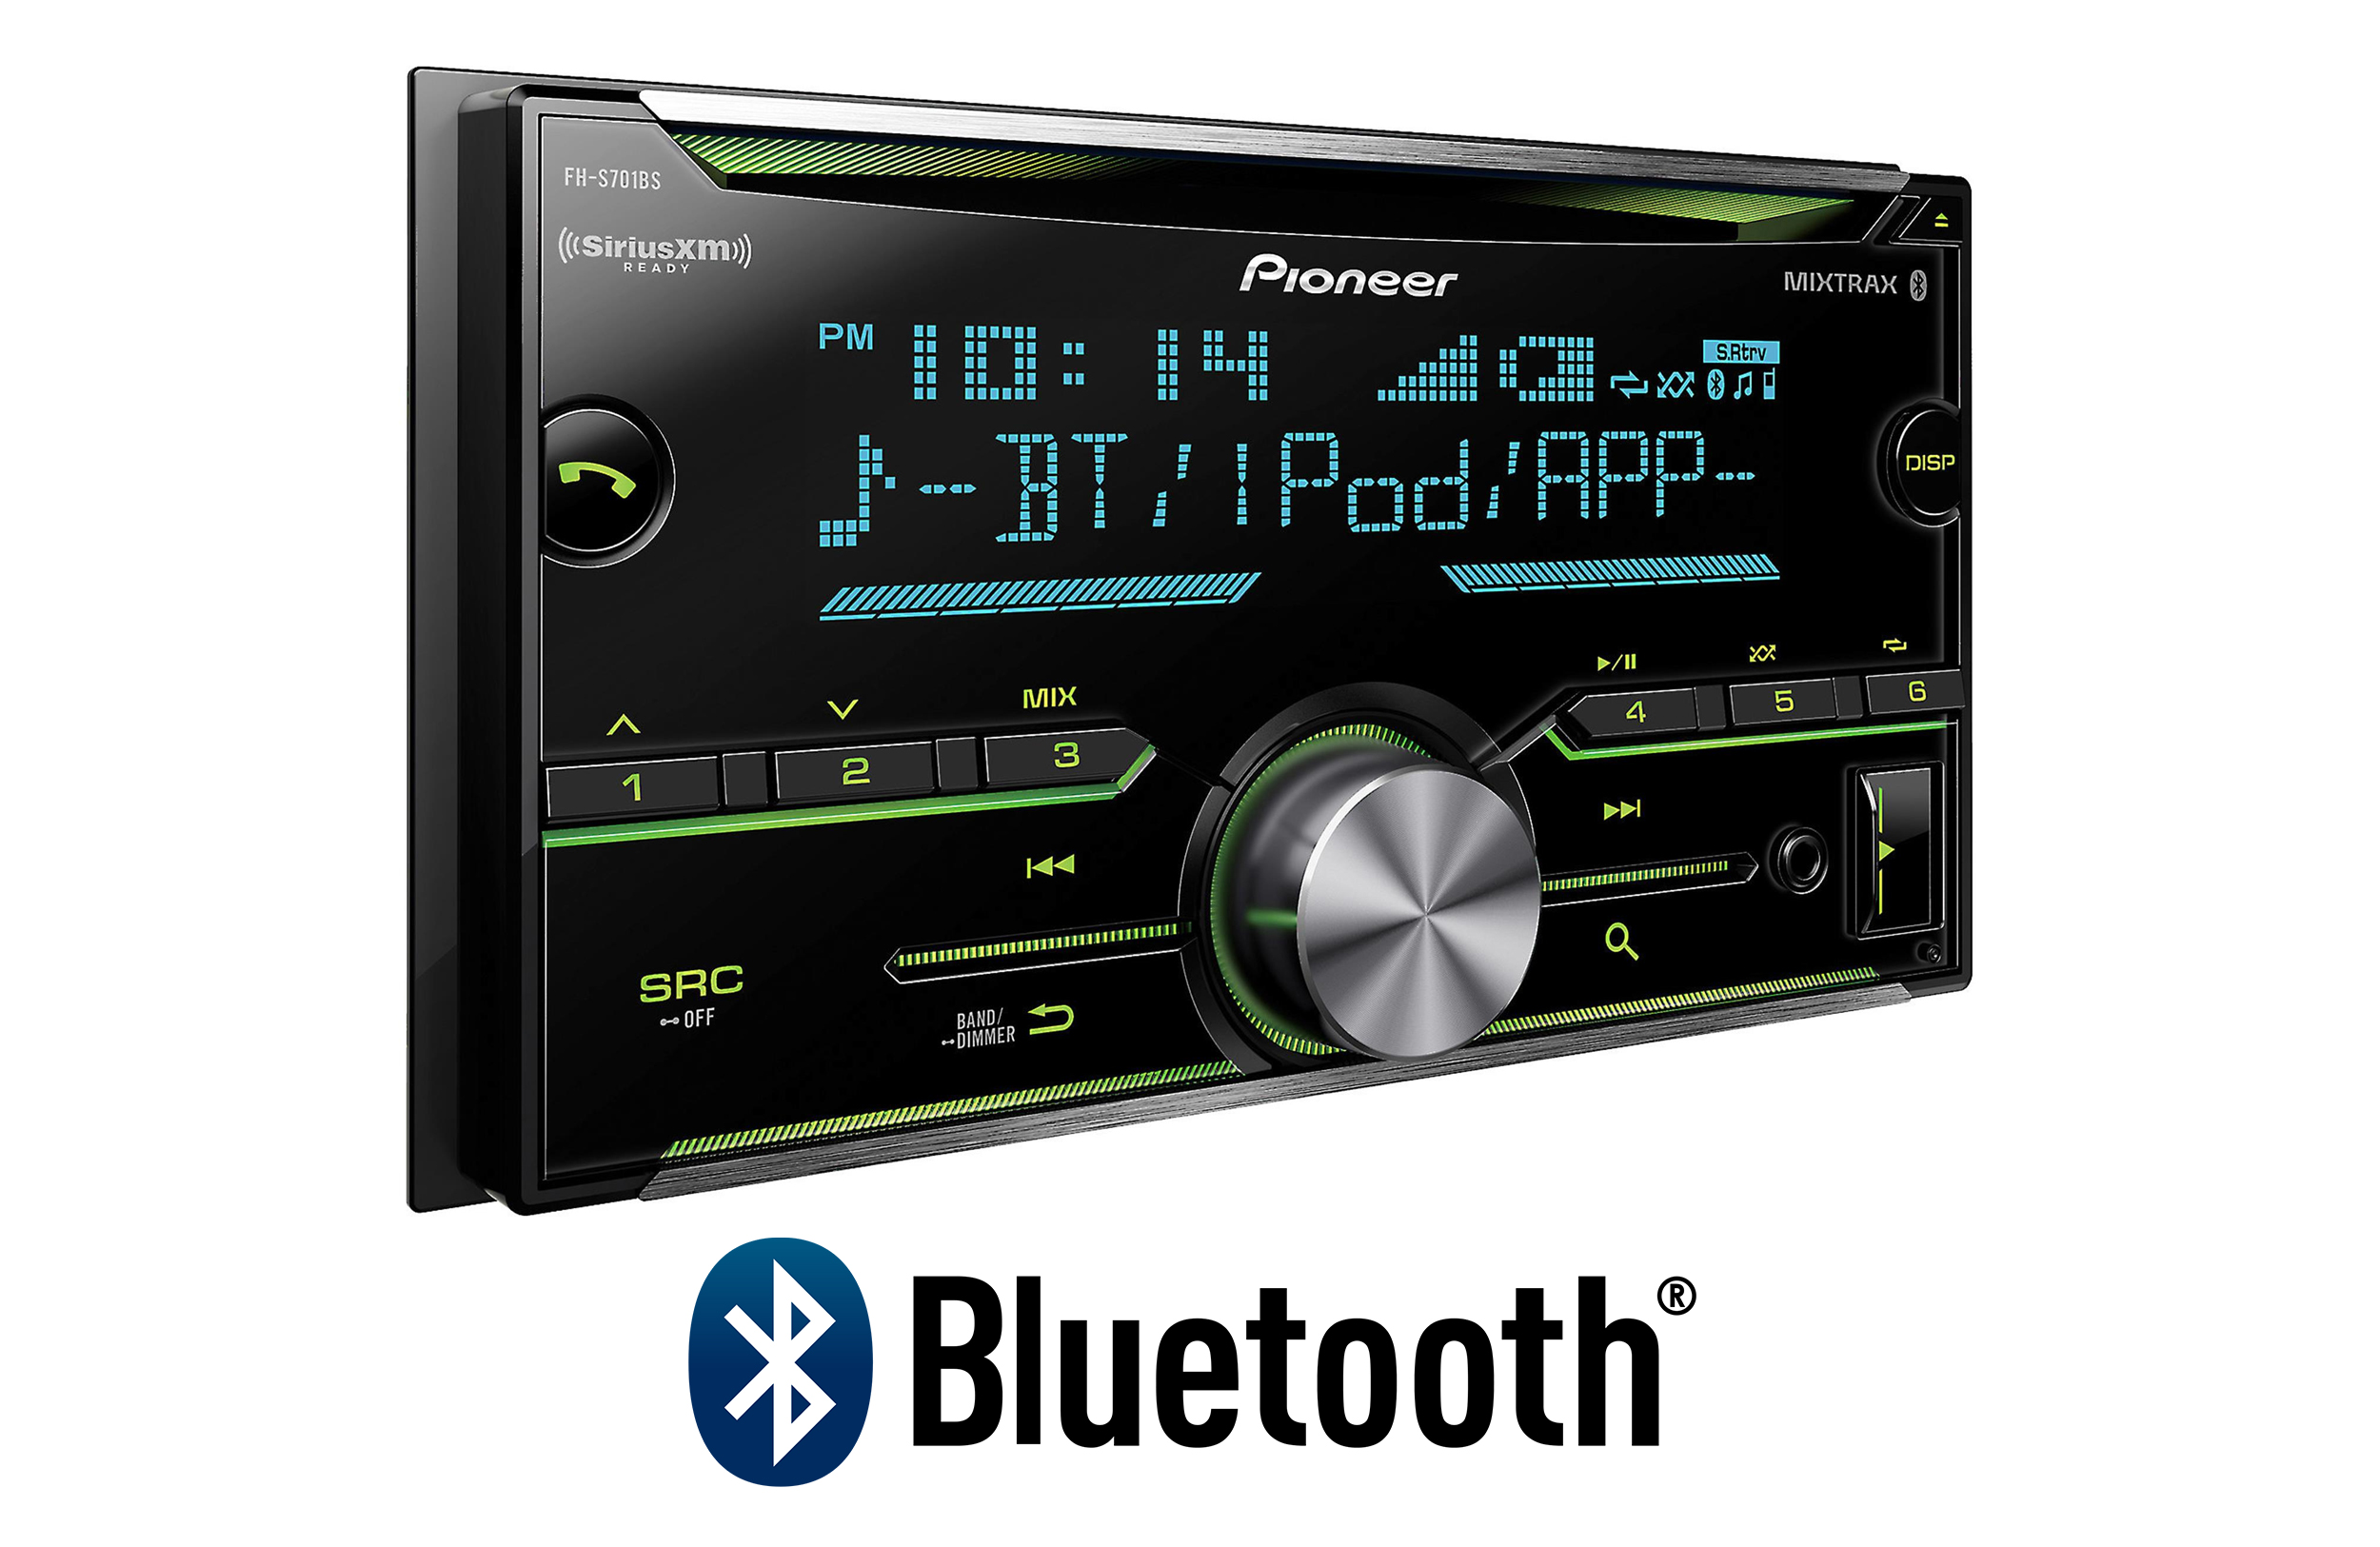 Built-in Bluetooth